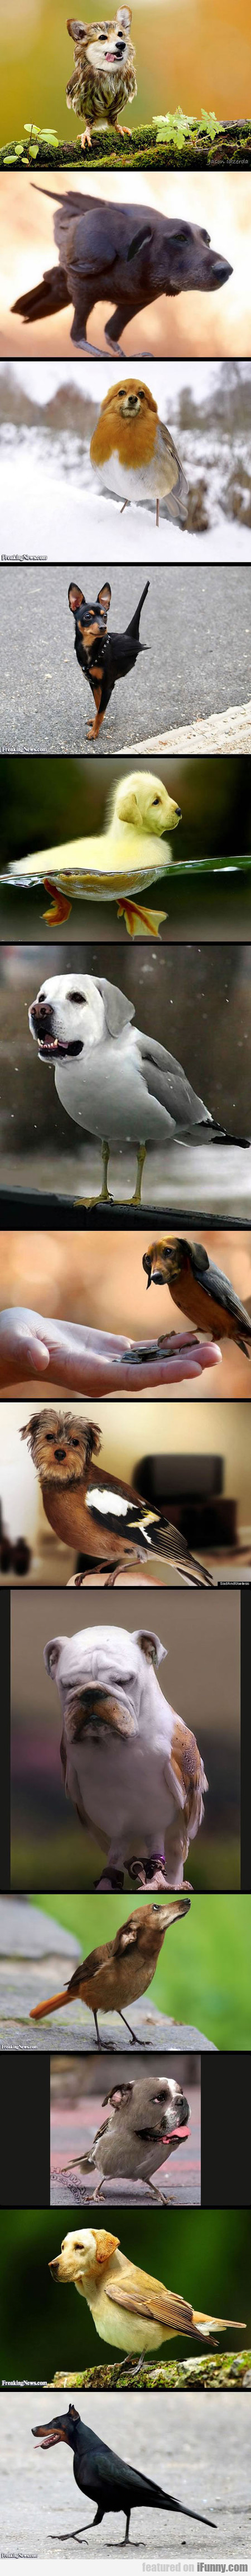 Dogs + Birds = This